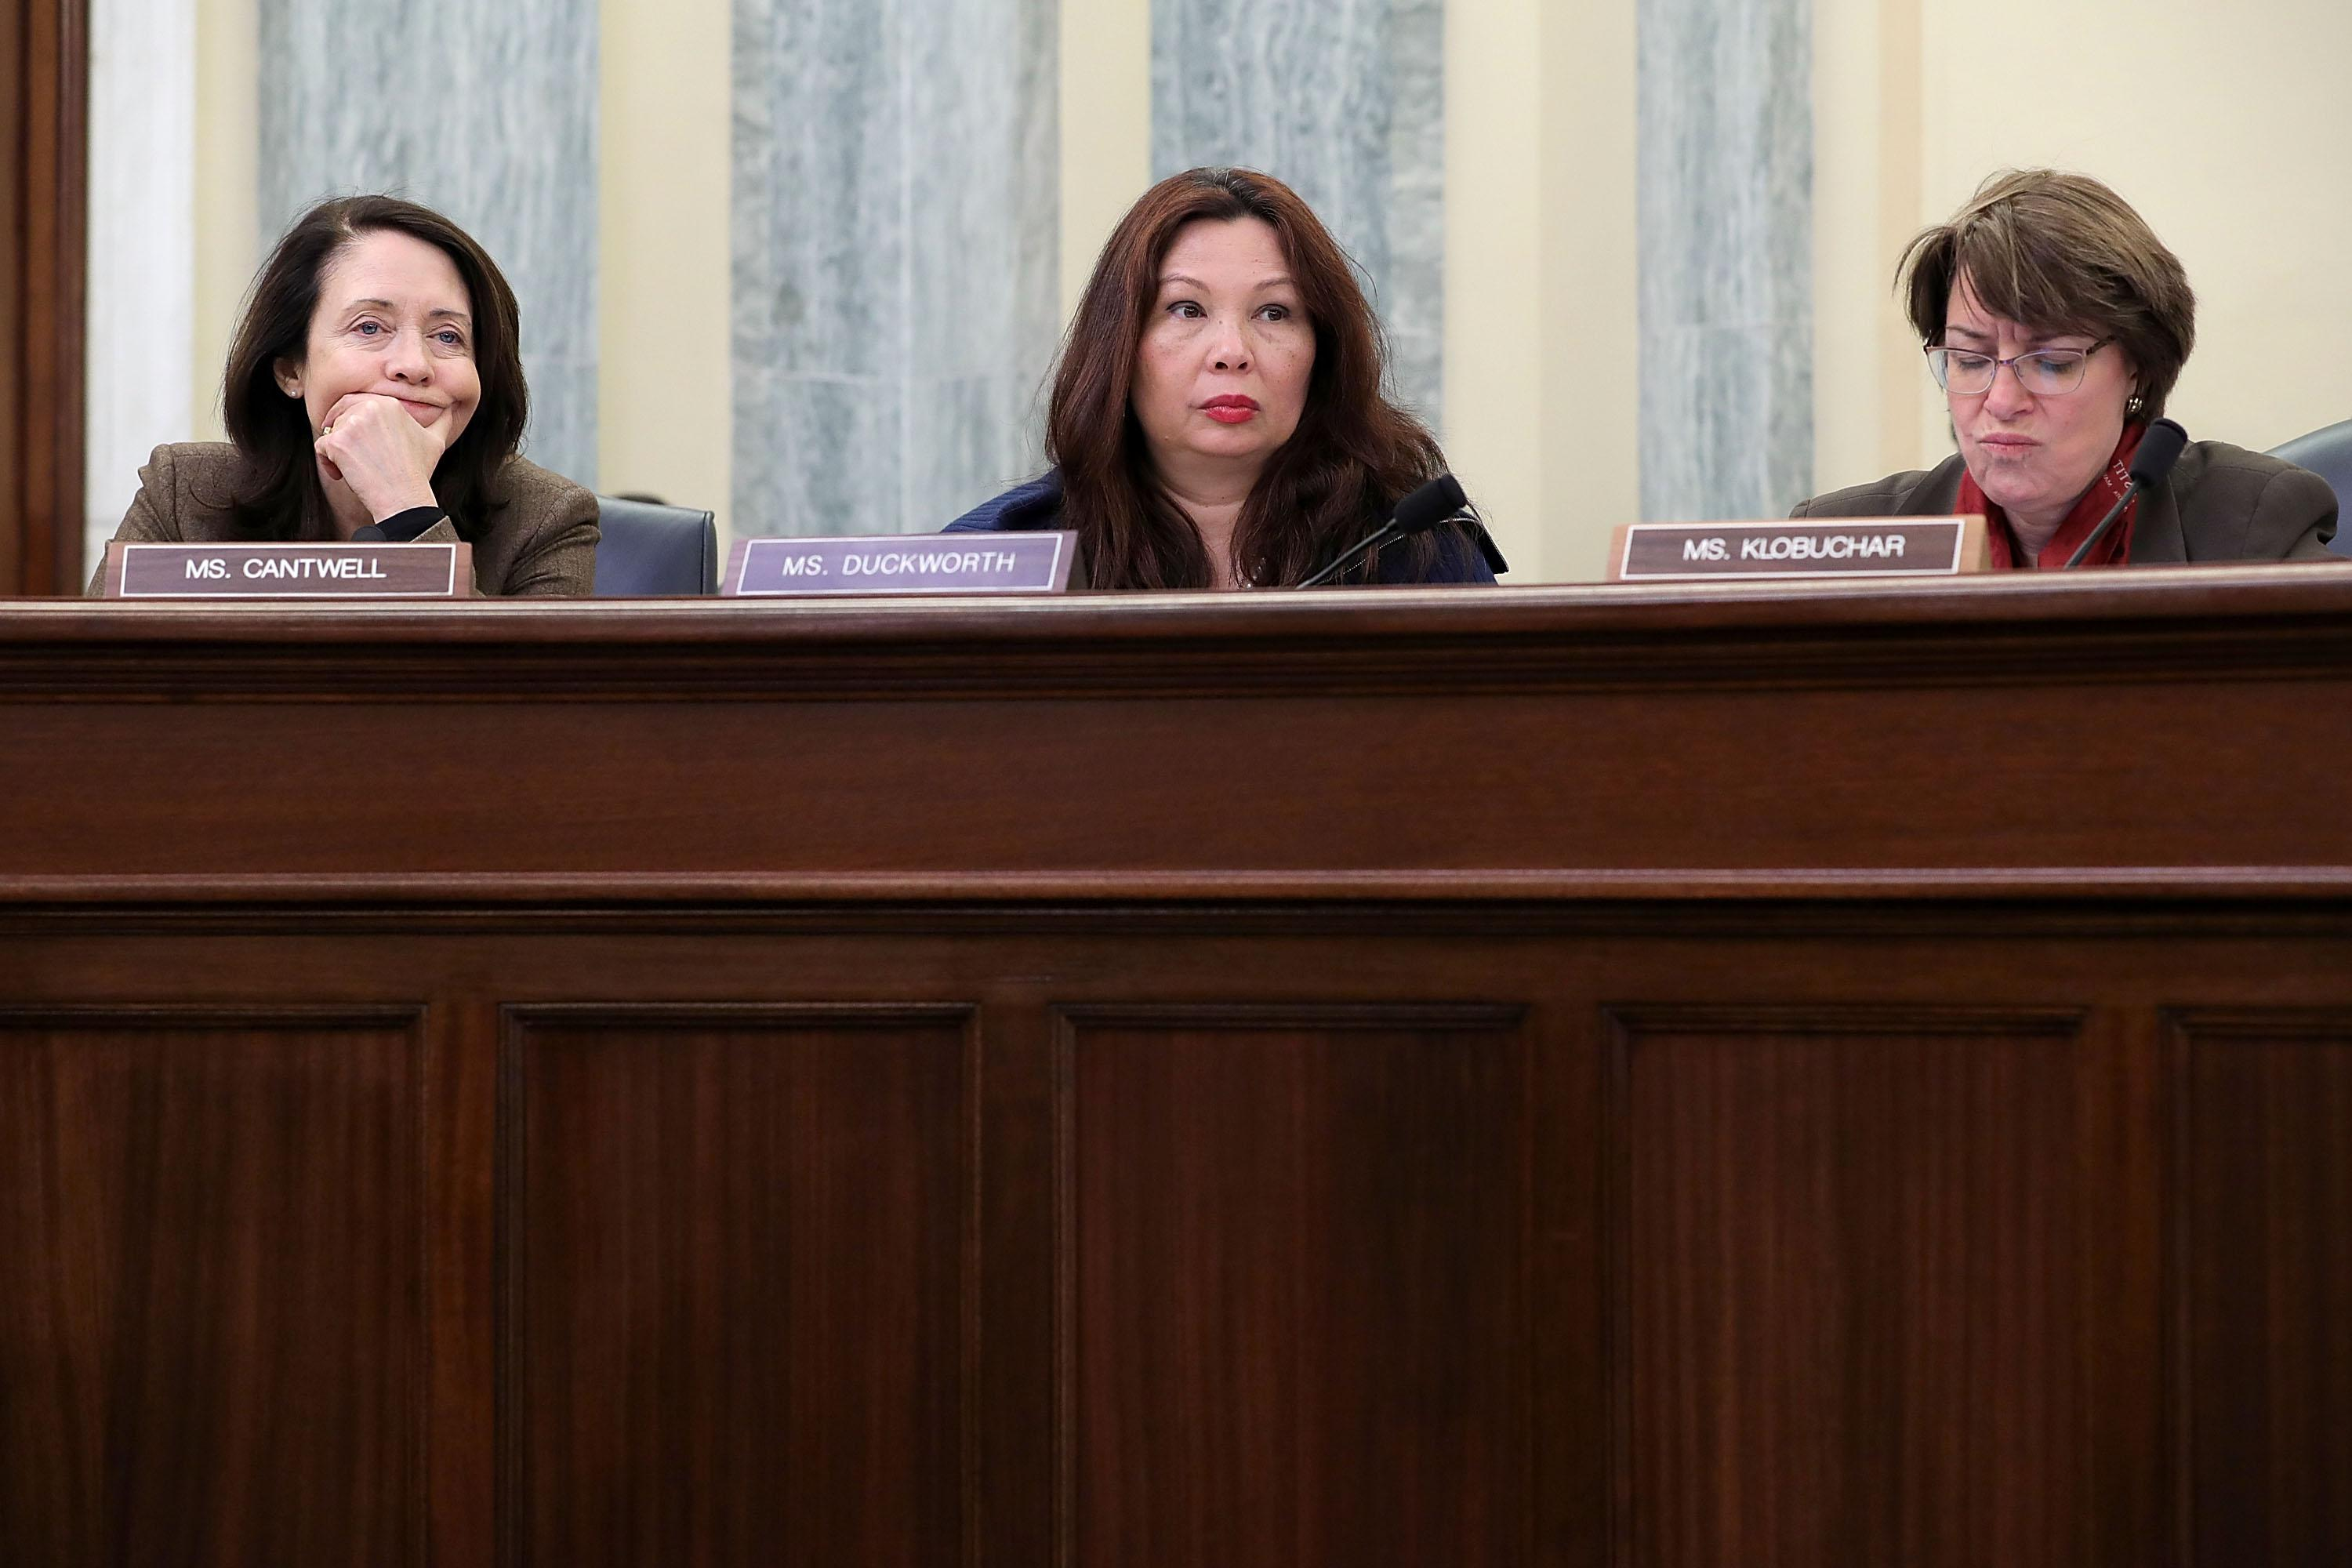 Senators Maria Cantwell, Tammy Duckworth, and Amy Klobuchar at a hearing